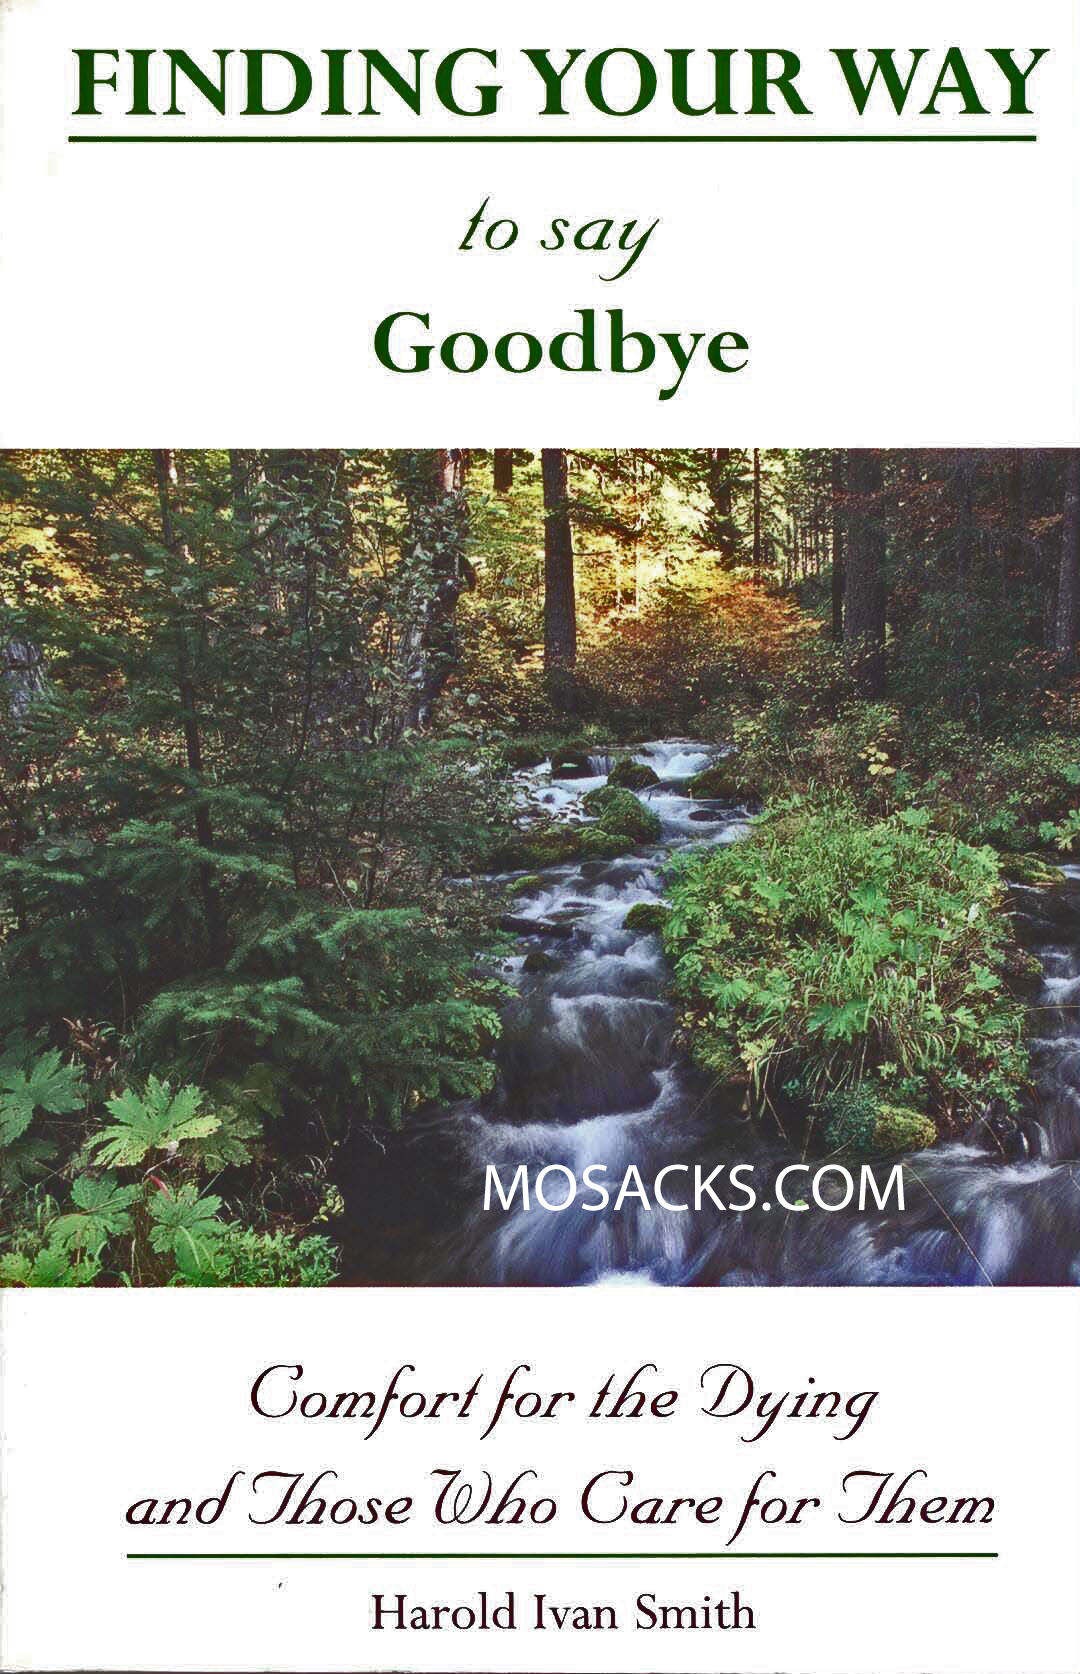 Finding Your Way To Say Goodbye by Harold Ivan Smith